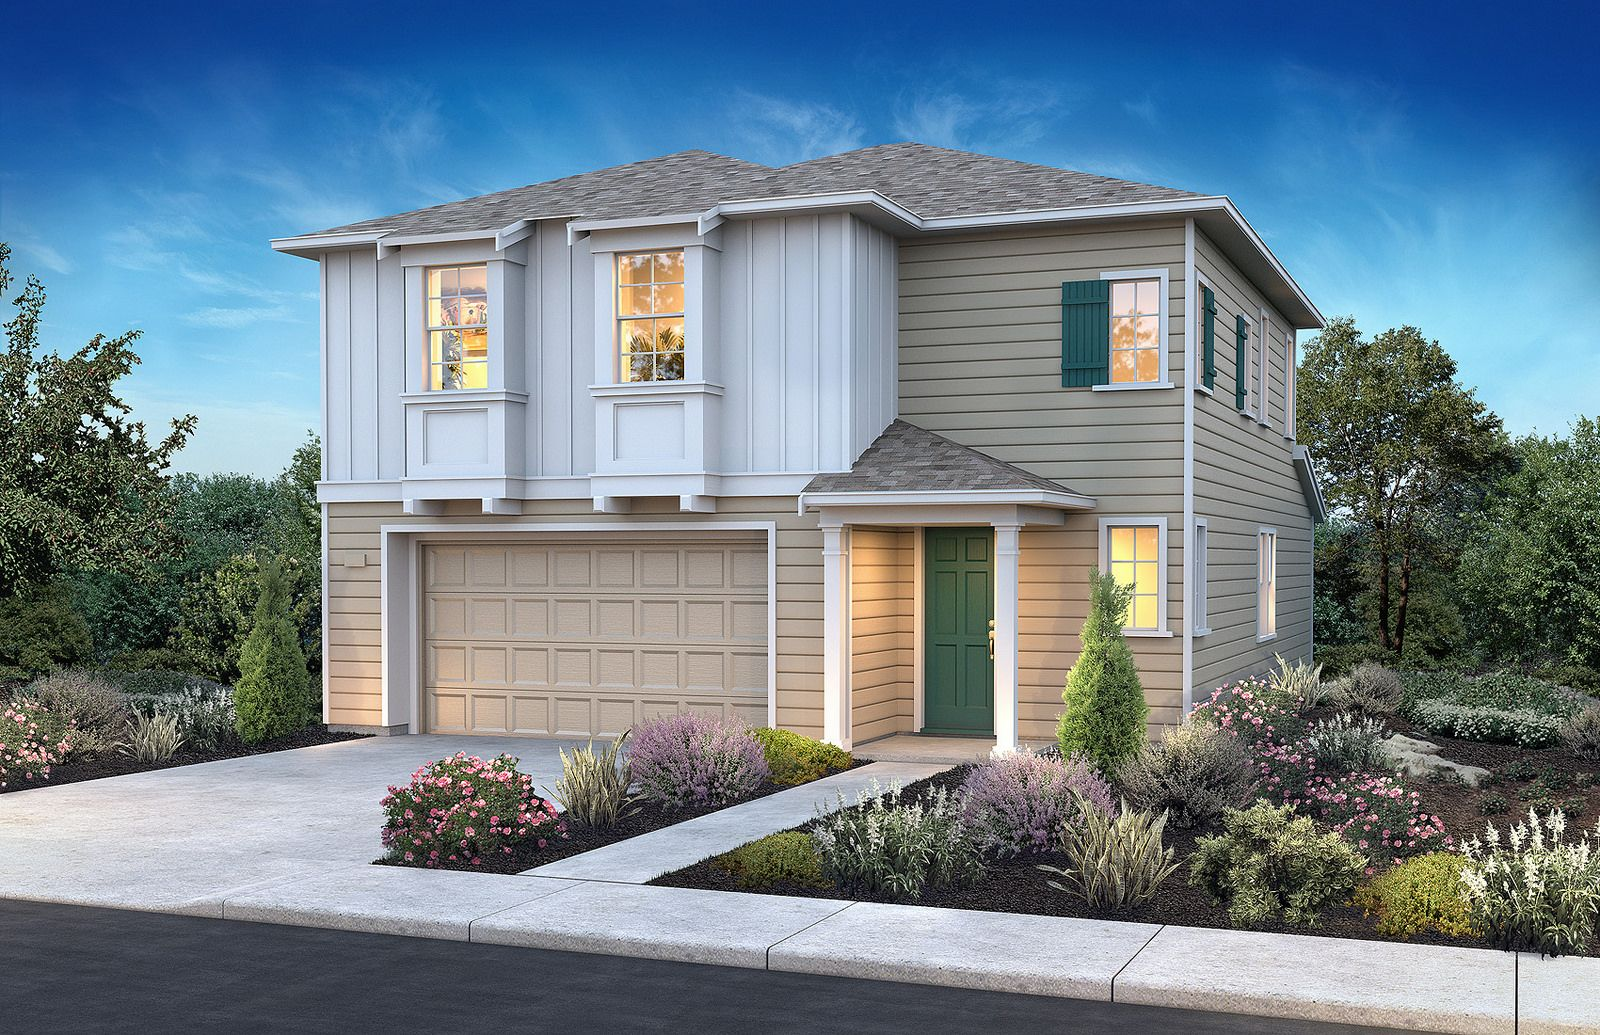 Beach House Plan 1 Elevation D Gorgeous New Homes Located Less Than One Mile From Monterey Bay By Sheahomesnocal